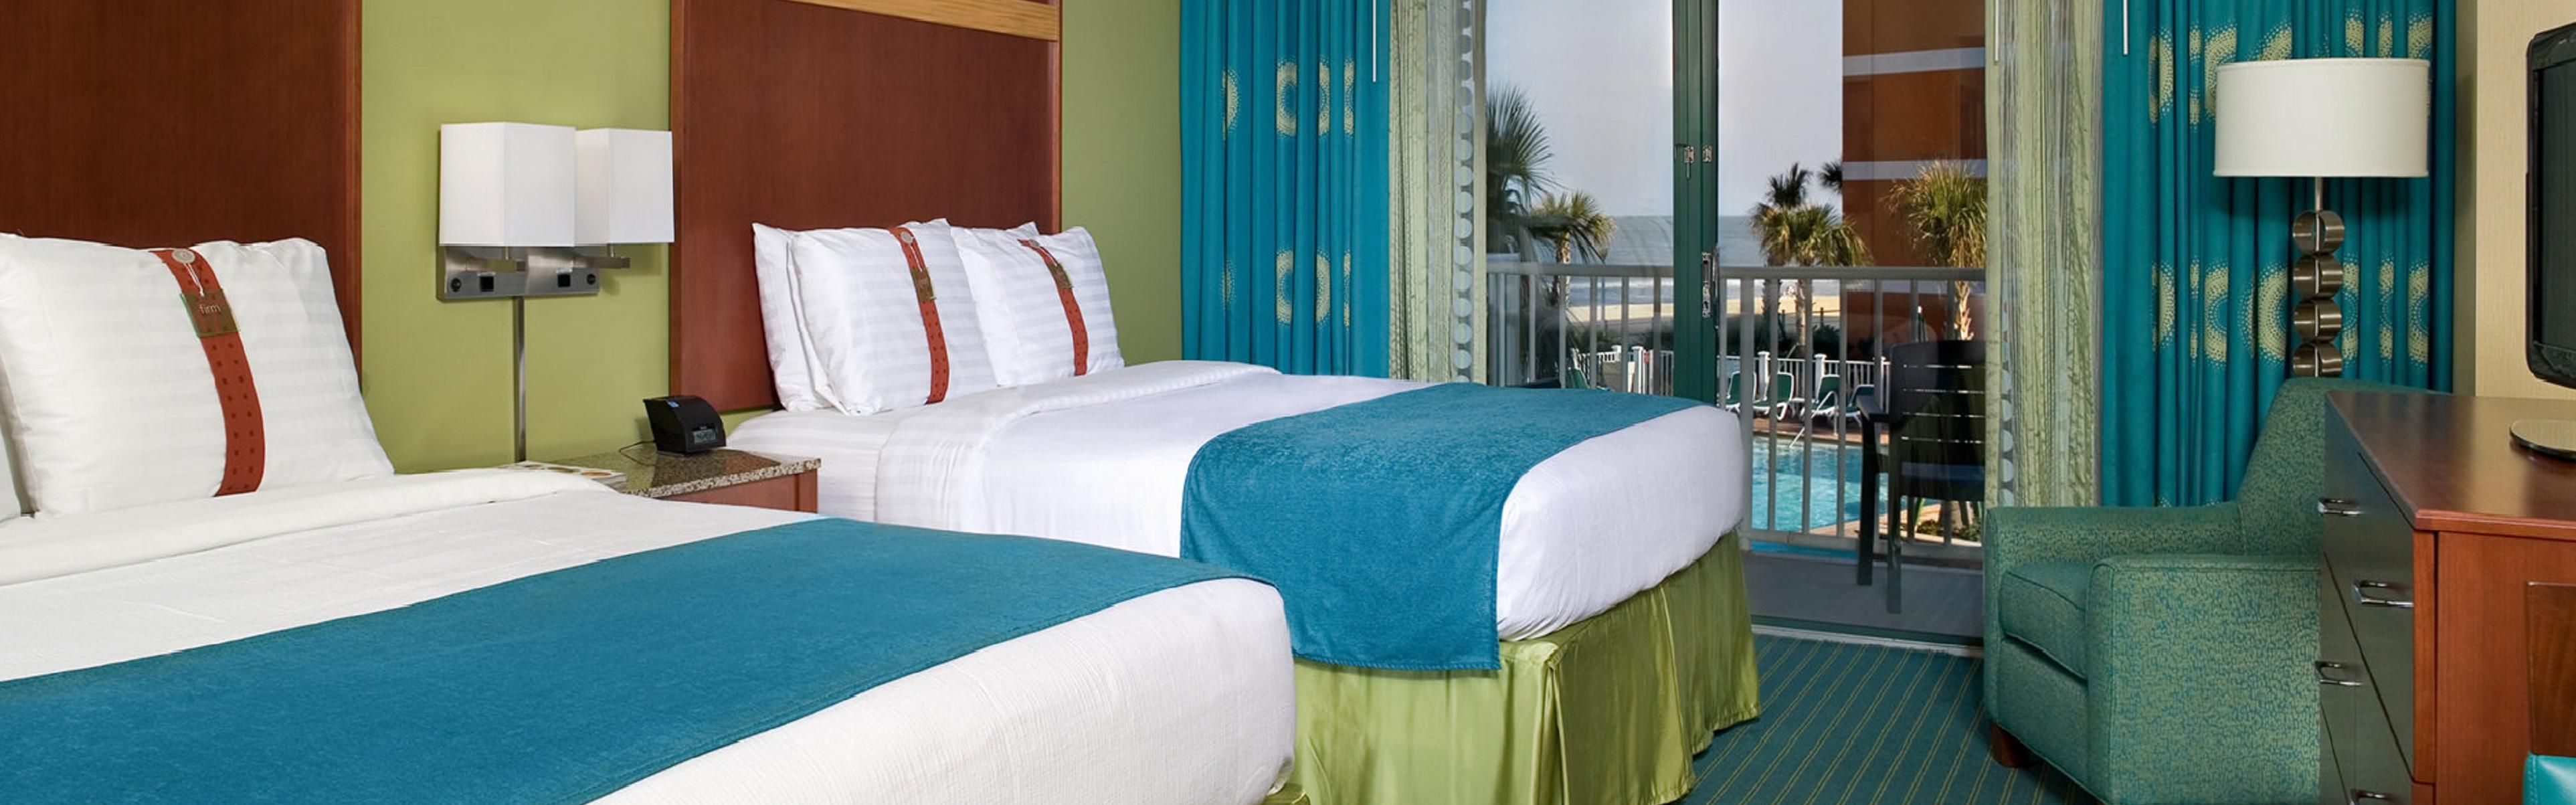 ... Poolside Room With 2 Queen Beds U0026amp; Ocean View; Suite